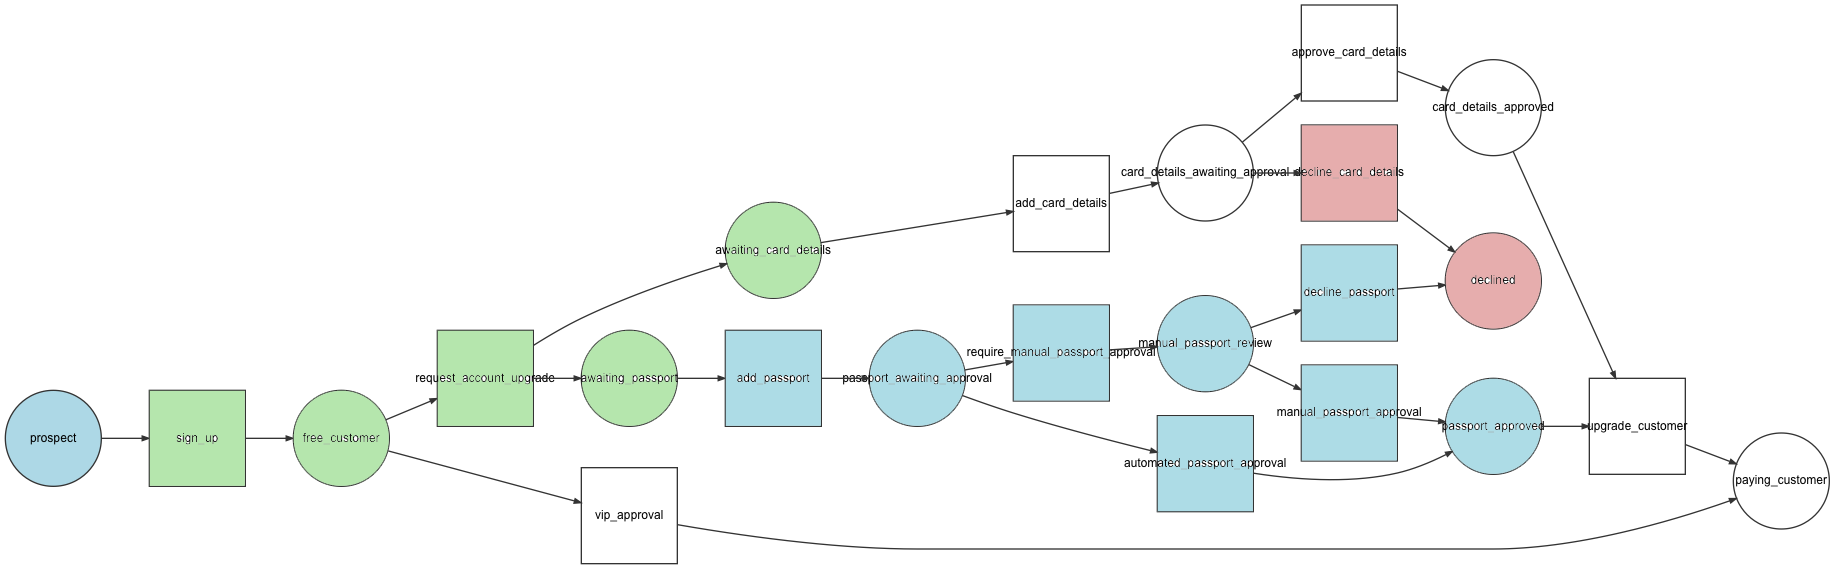 symfony workflow complex paths example